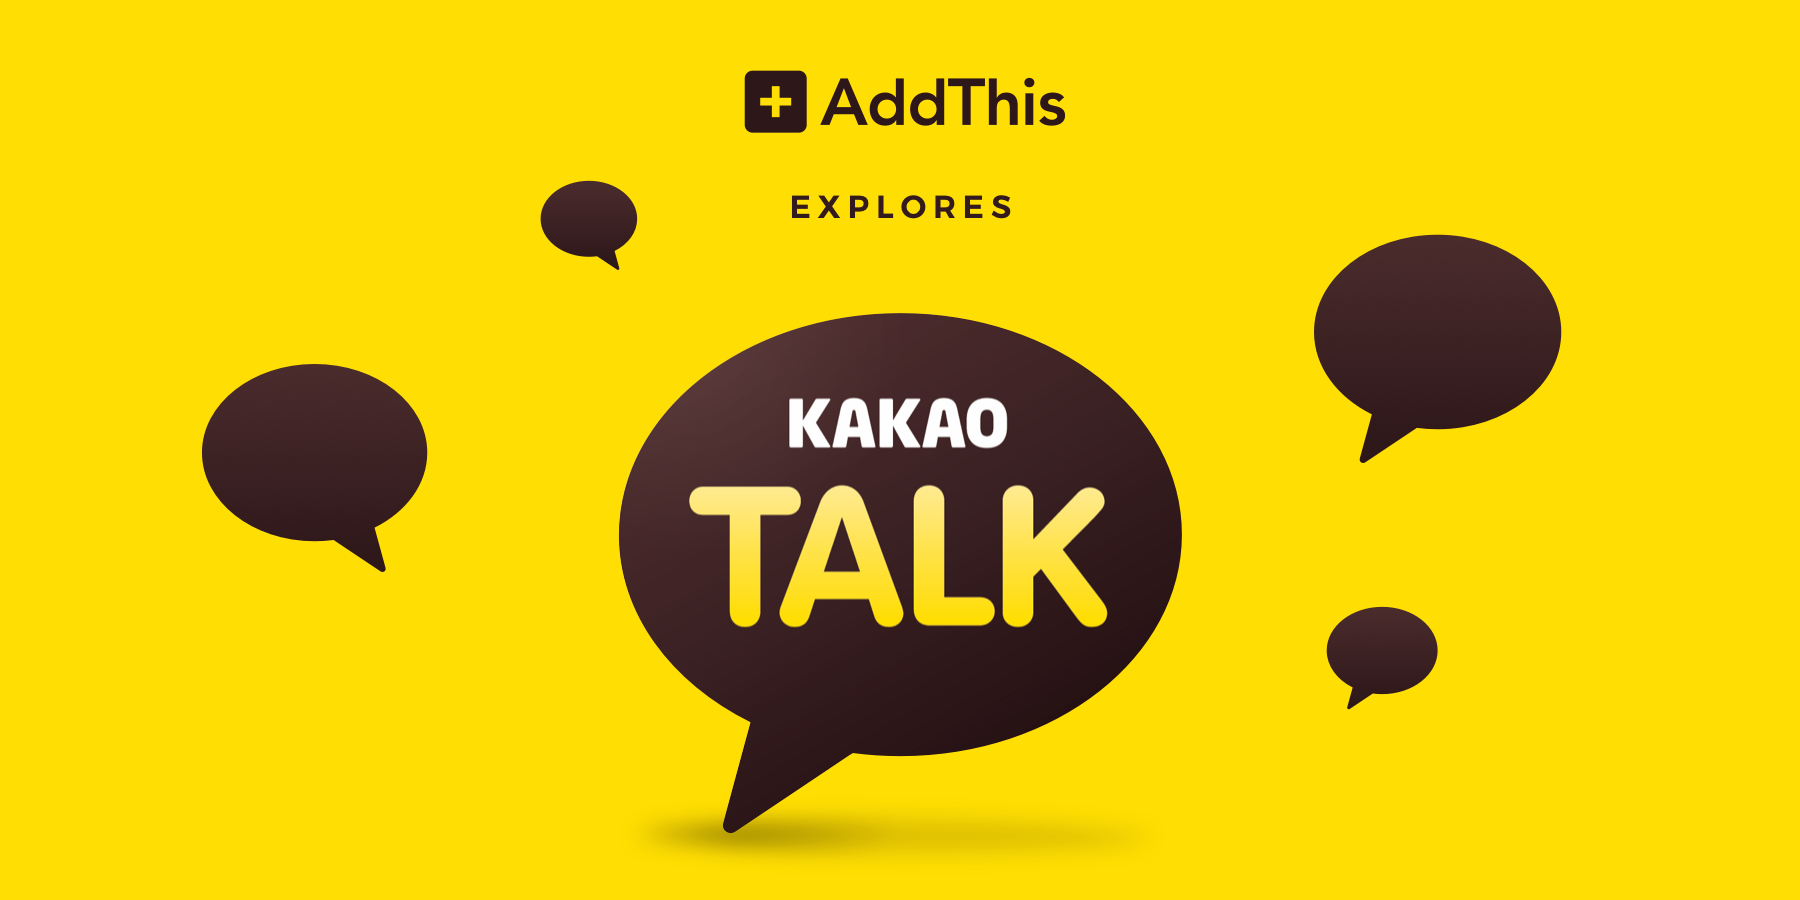 What You Should Know About KakaoTalk - AddThis